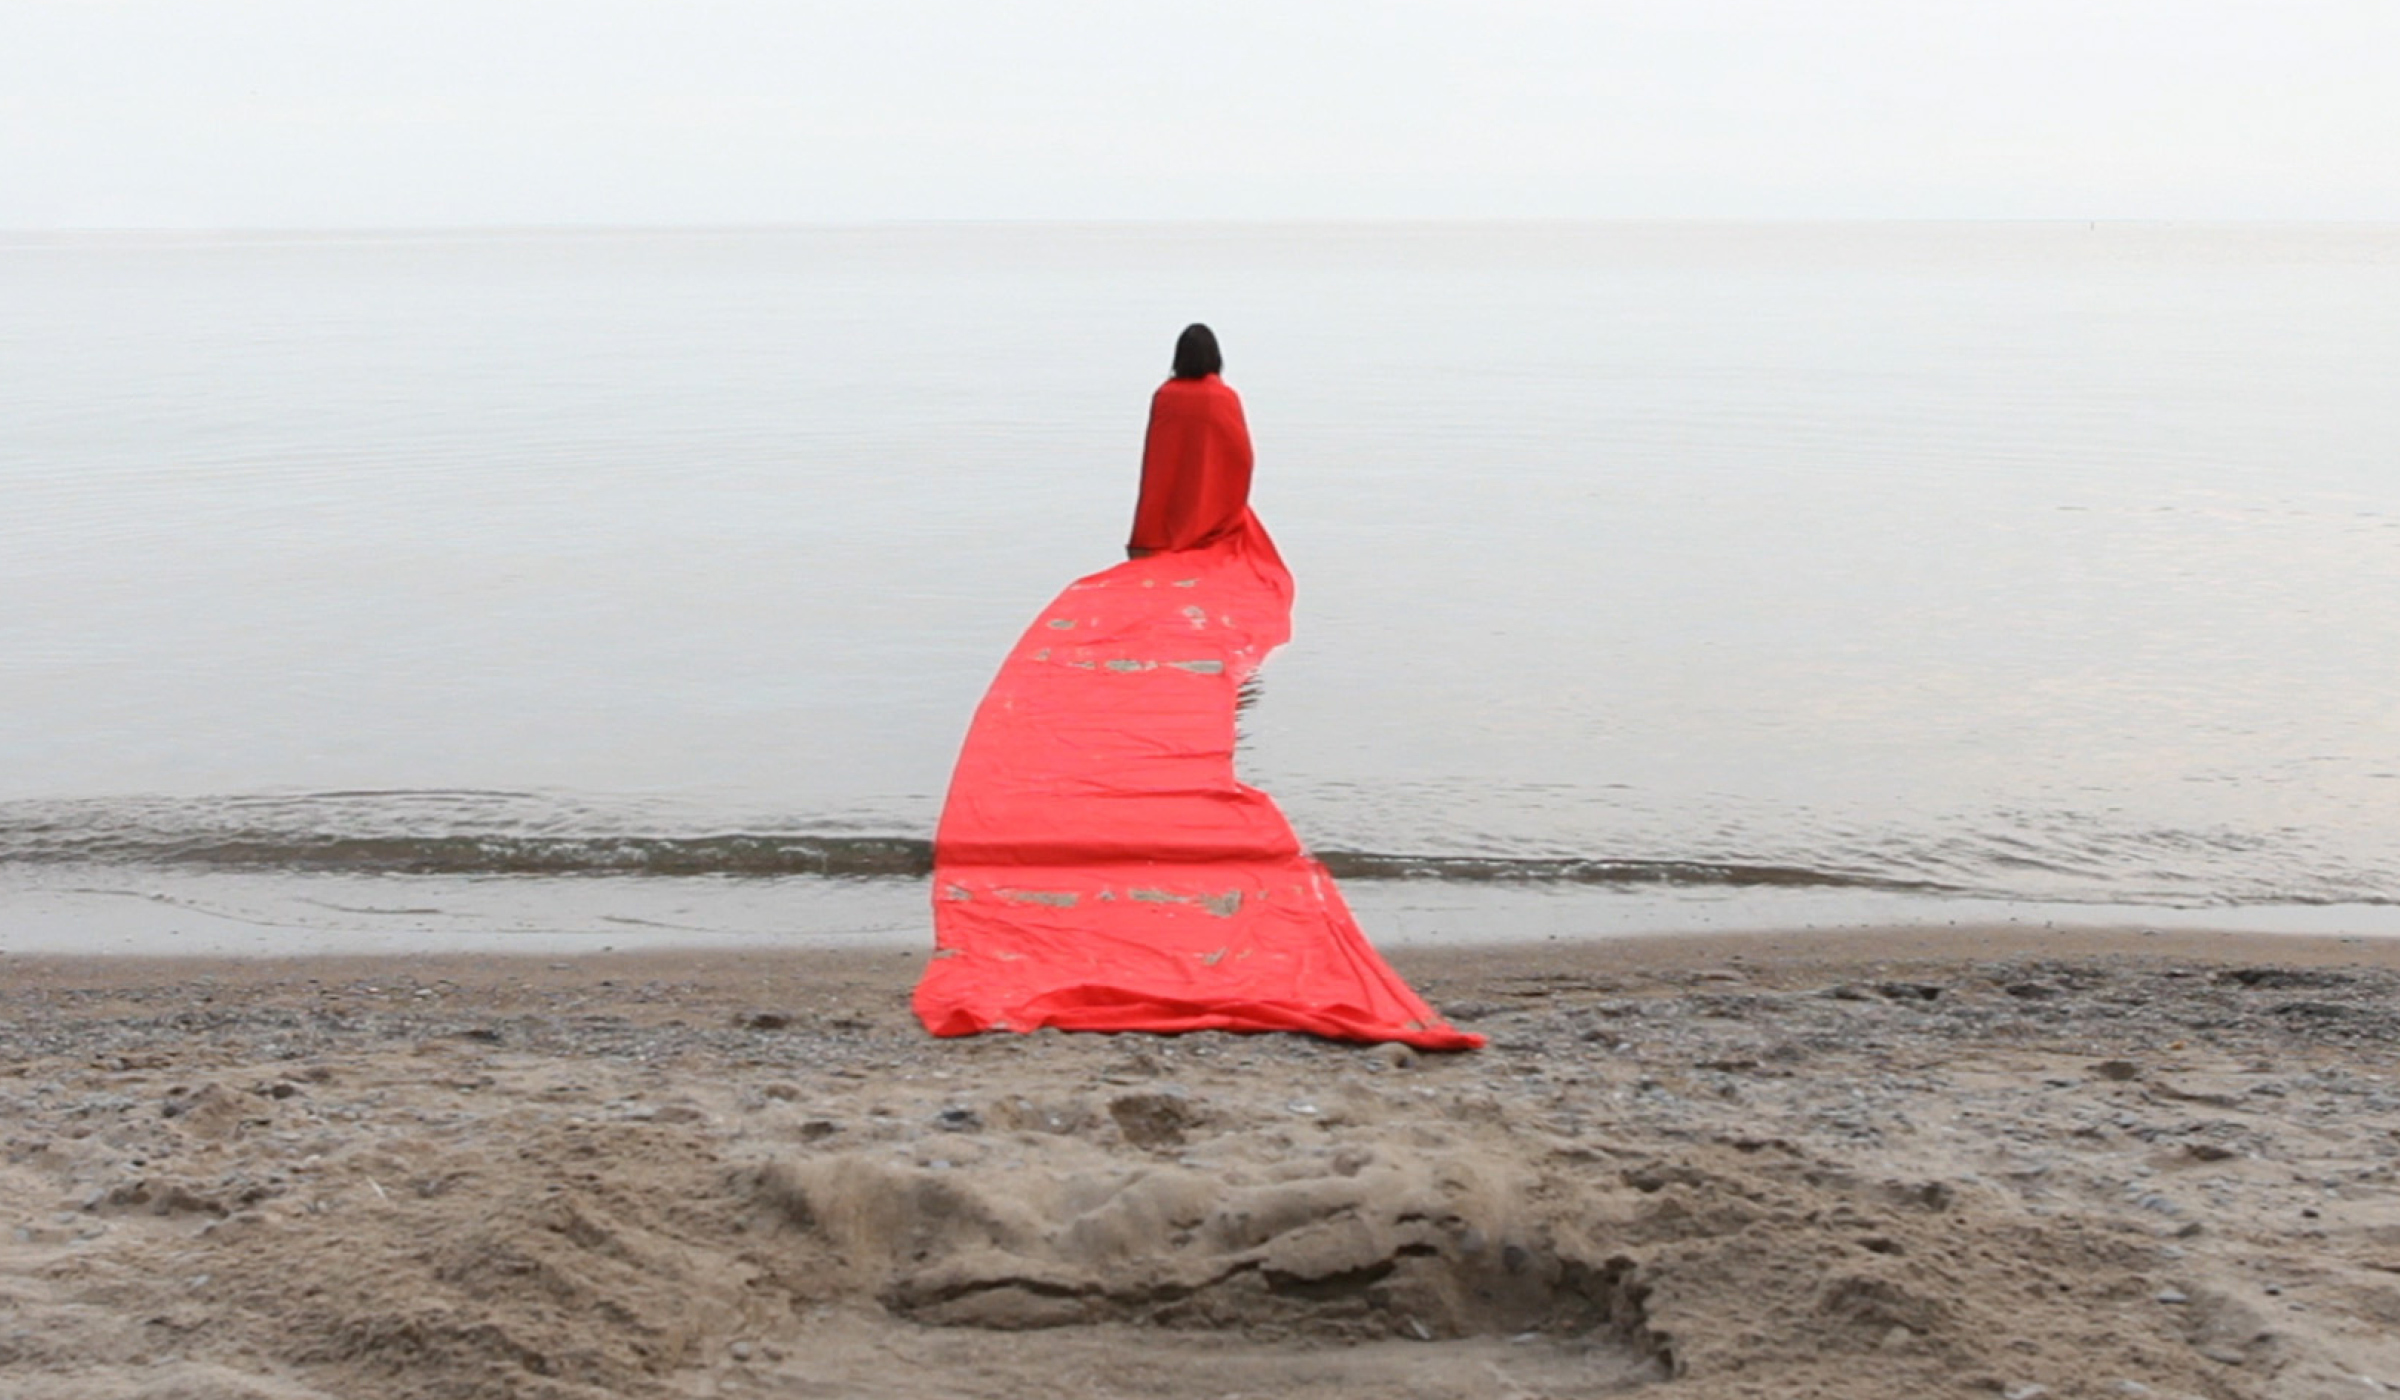 A person draped in an orangeish/reddish cloak, with a long rectangular train, walks into a body of water. The sky is grey and overcast. In the foreground is a sandy beach covered in footsteps.